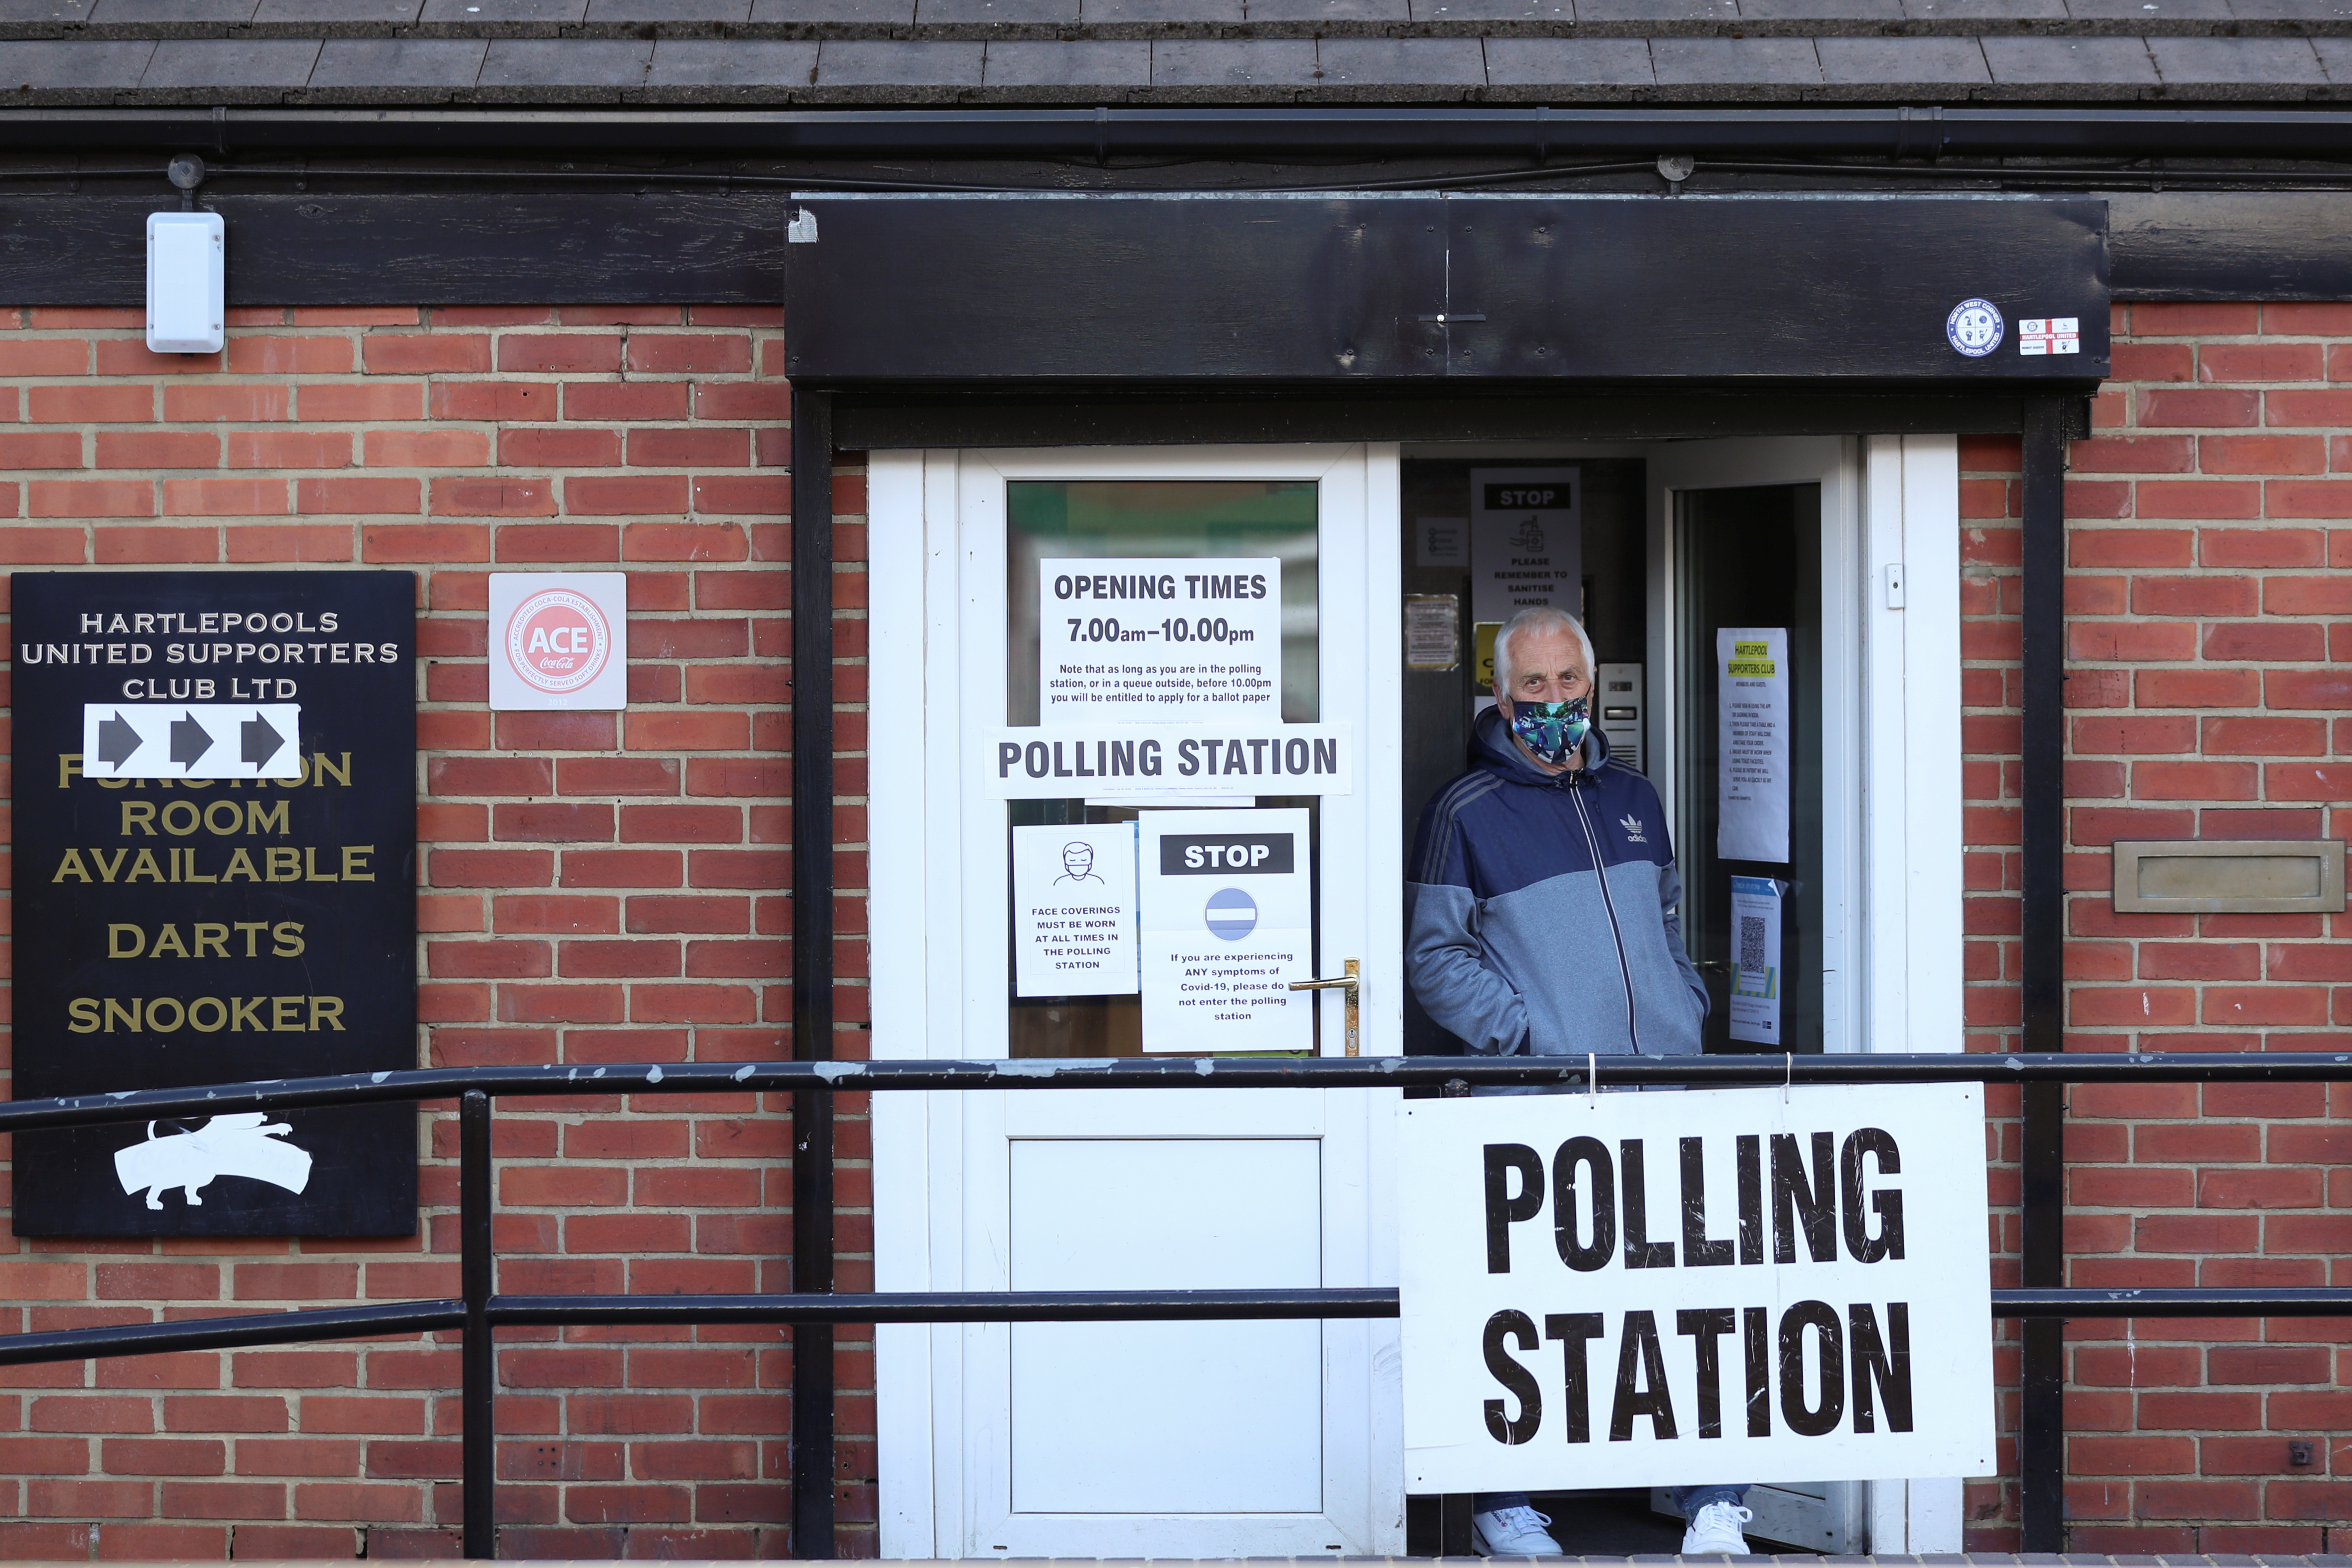 A man is seen at a polling station during local elections, in Hartlepool, Britain May 6, 2021. REUTERS/Lee Smith